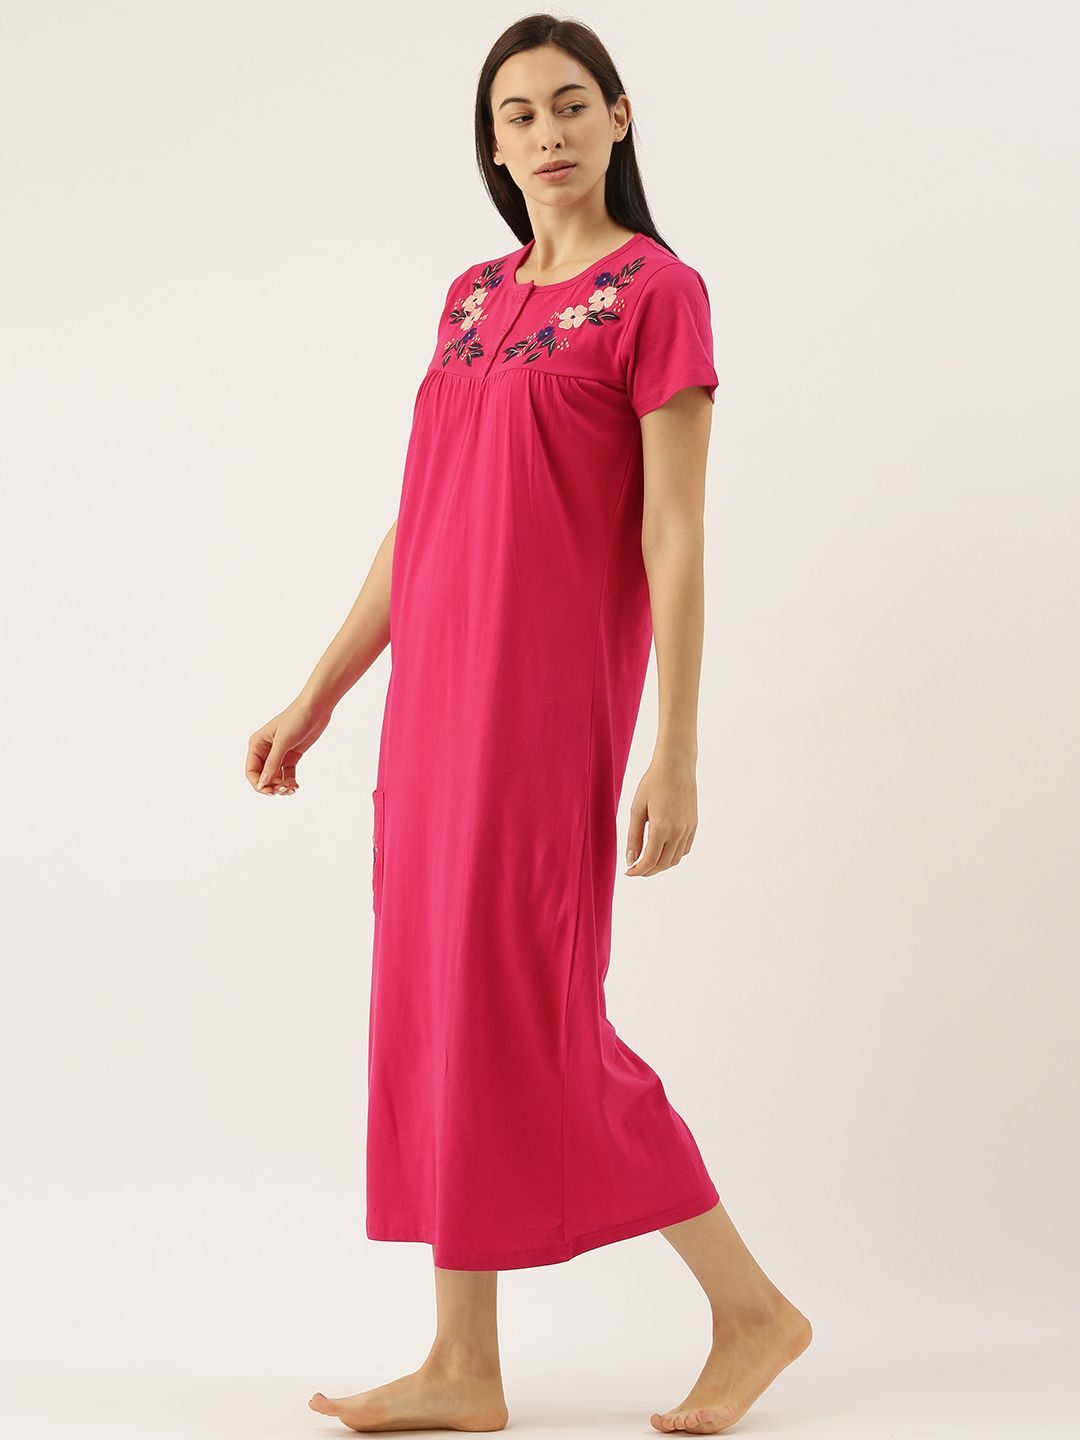 Red Night Dress with Pretty Flowers Embroidery